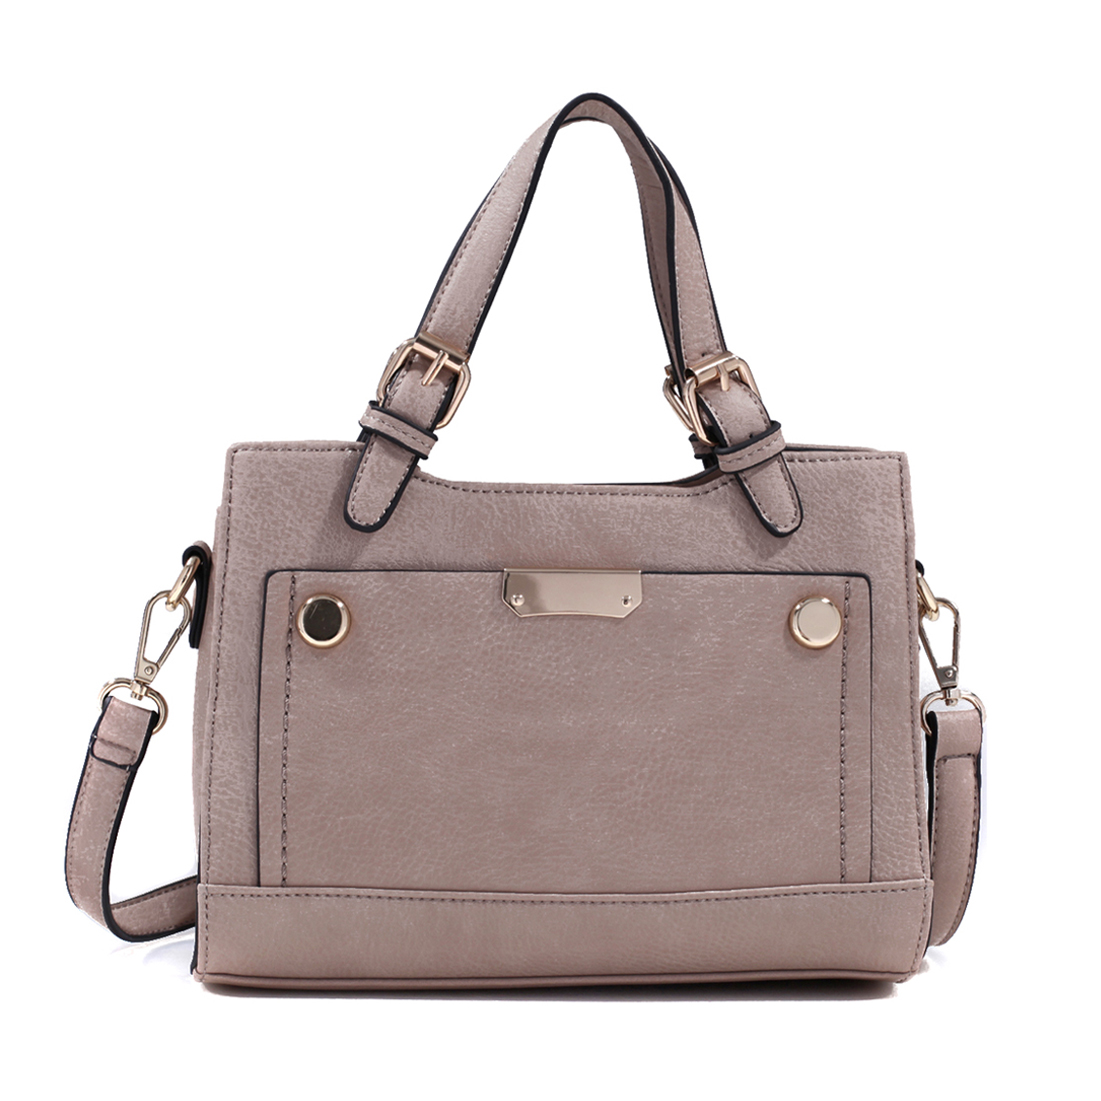 Faux Leather Mini Satchel with Buckle Straps and Removable, Adjustable Shoulder Strap